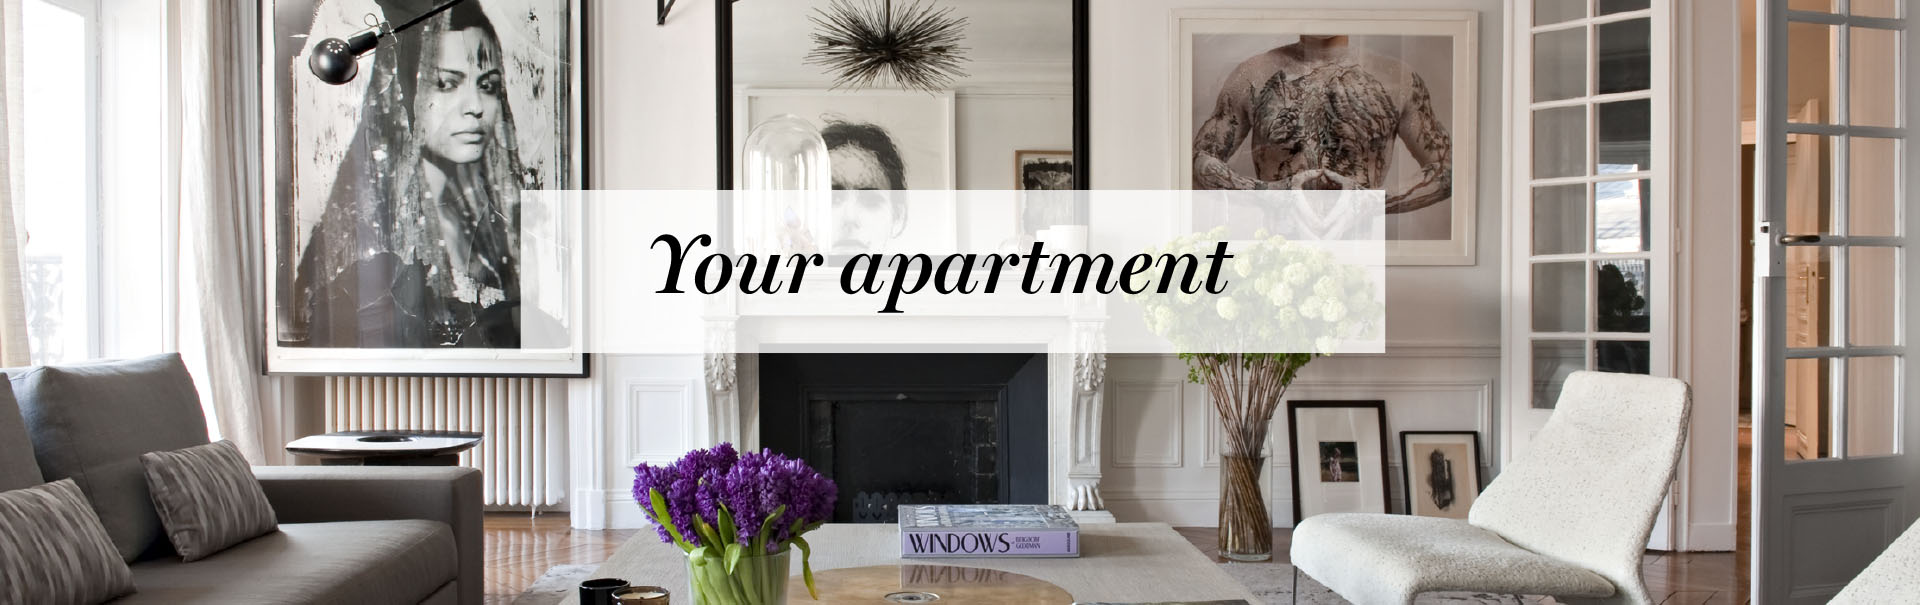 yourapartment-1